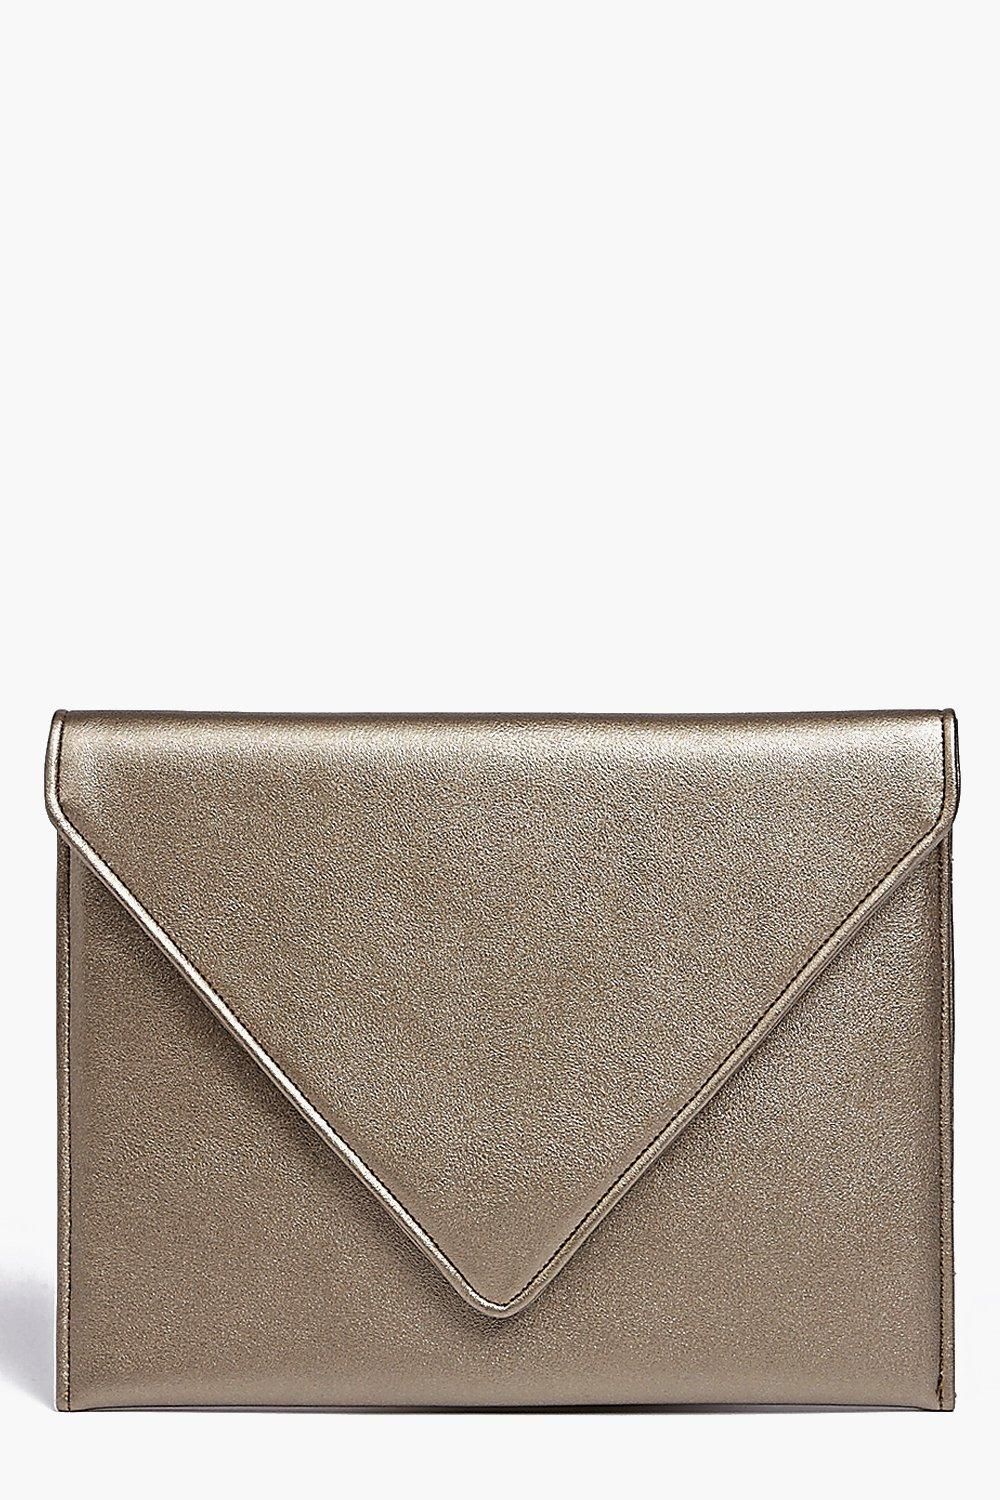 Lara Fold Over Clutch Bag